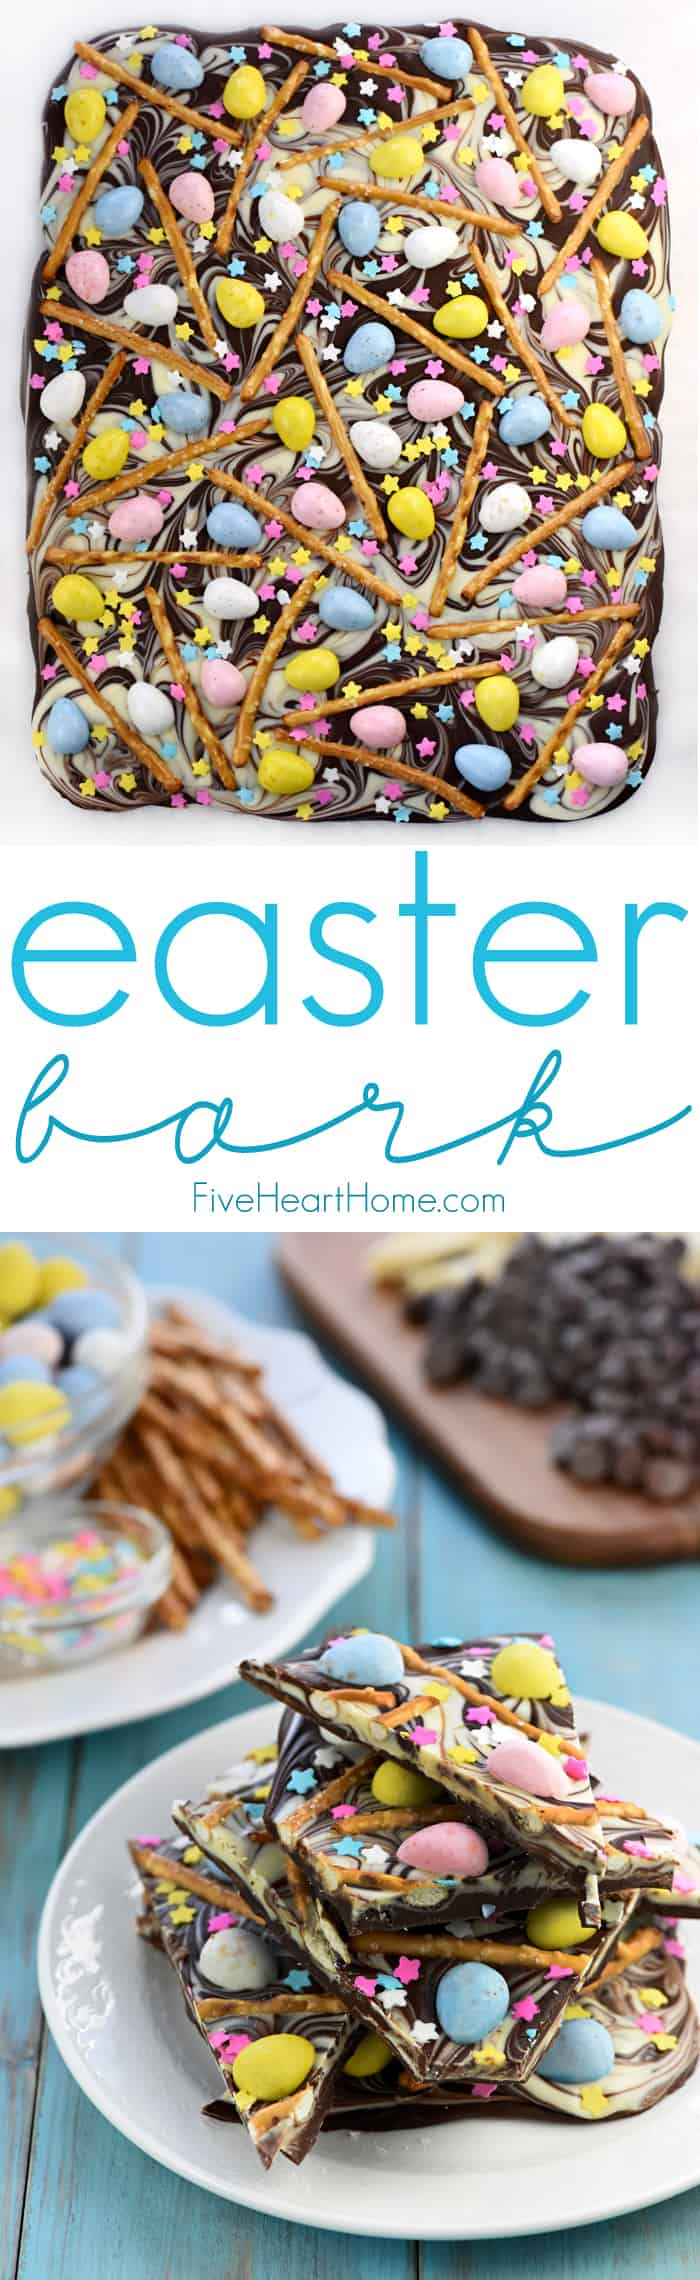 Easter Bark with Chocolate Eggs + Pretzels ~ a simple, festive, spring treat featuring swirled chocolate topped with mini chocolate eggs, pretzels, & pastel sprinkles! | FiveHeartHome.com